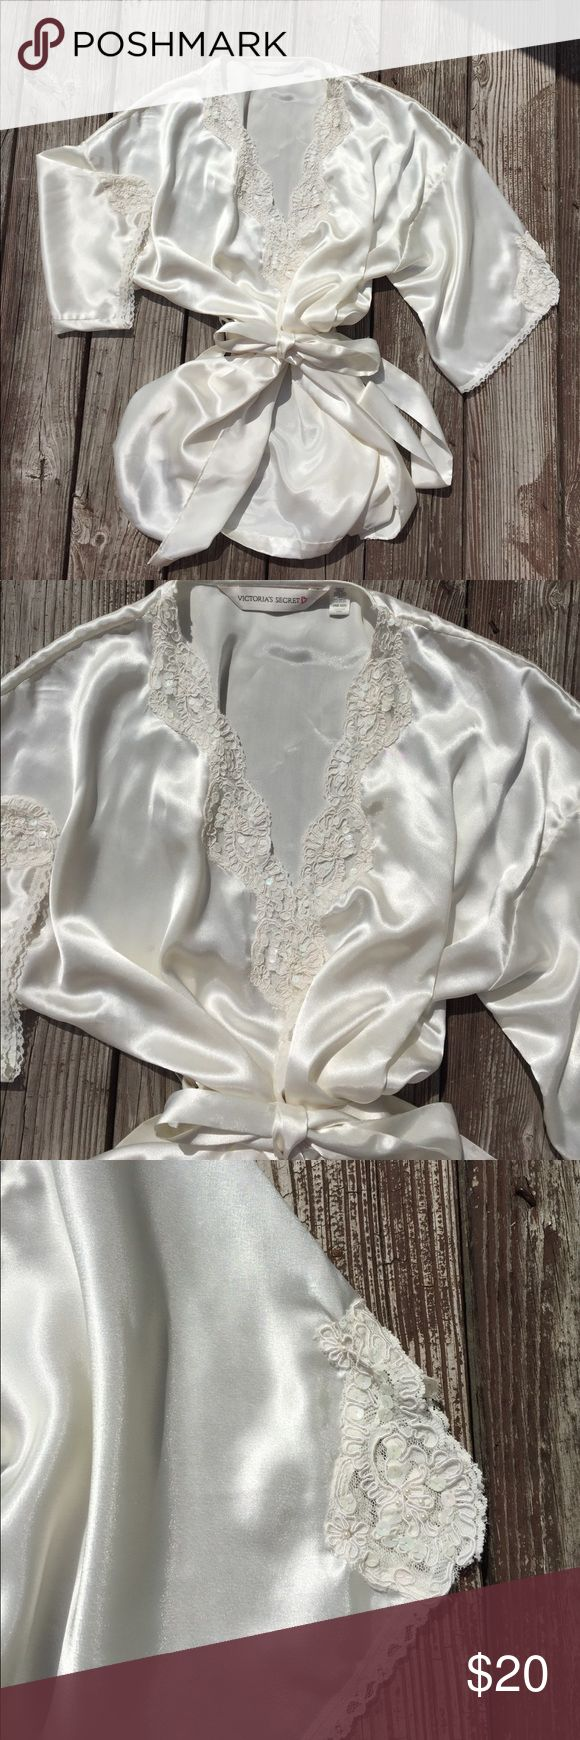 Victoria's Secret lingerie Robe Silky smooth robe with tie. Beads, sequins and lace on front and sleeves. So feminine and sexy! Great for bride or newlywed! Victoria's Secret Intimates & Sleepwear Robes